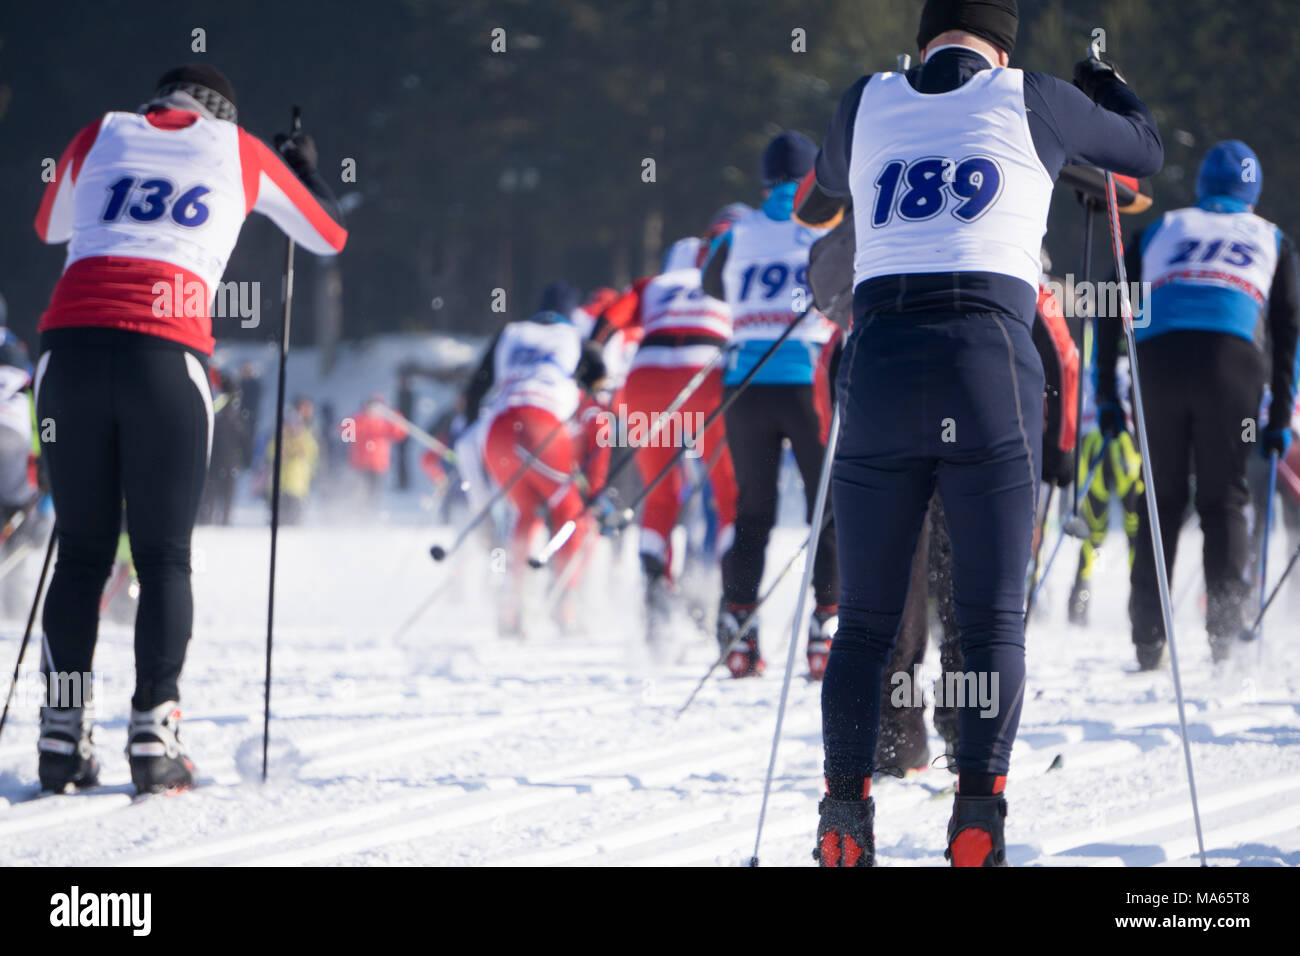 competitions in ski racing discipline, called the number of people start at the same time - Stock Image